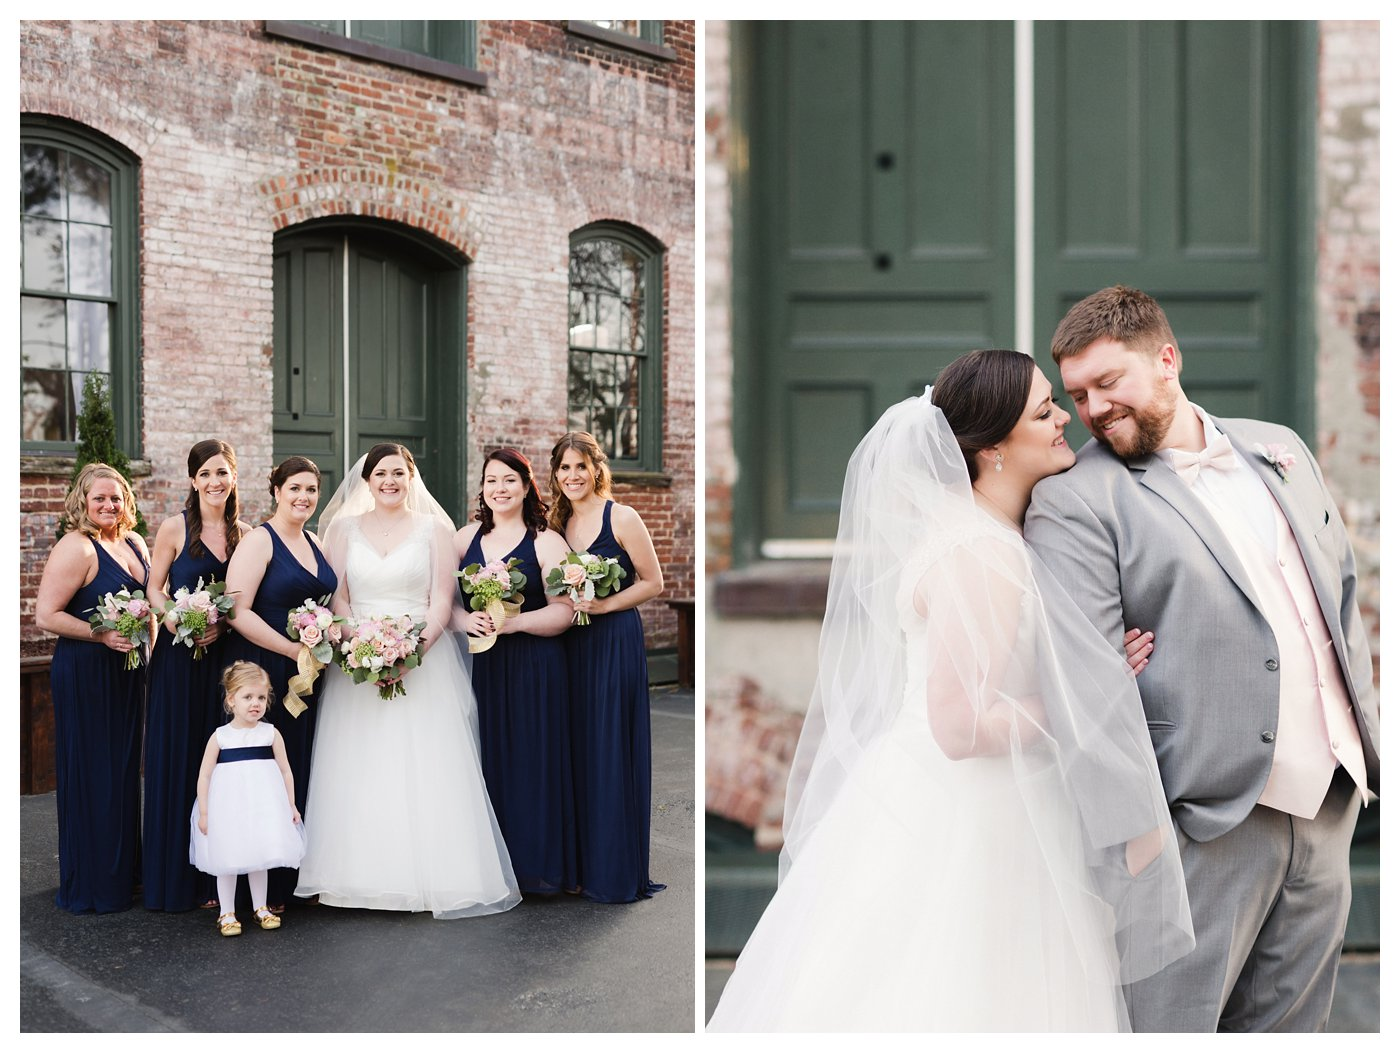 Downtown Raleigh NC Wedding by Amanda and Grady